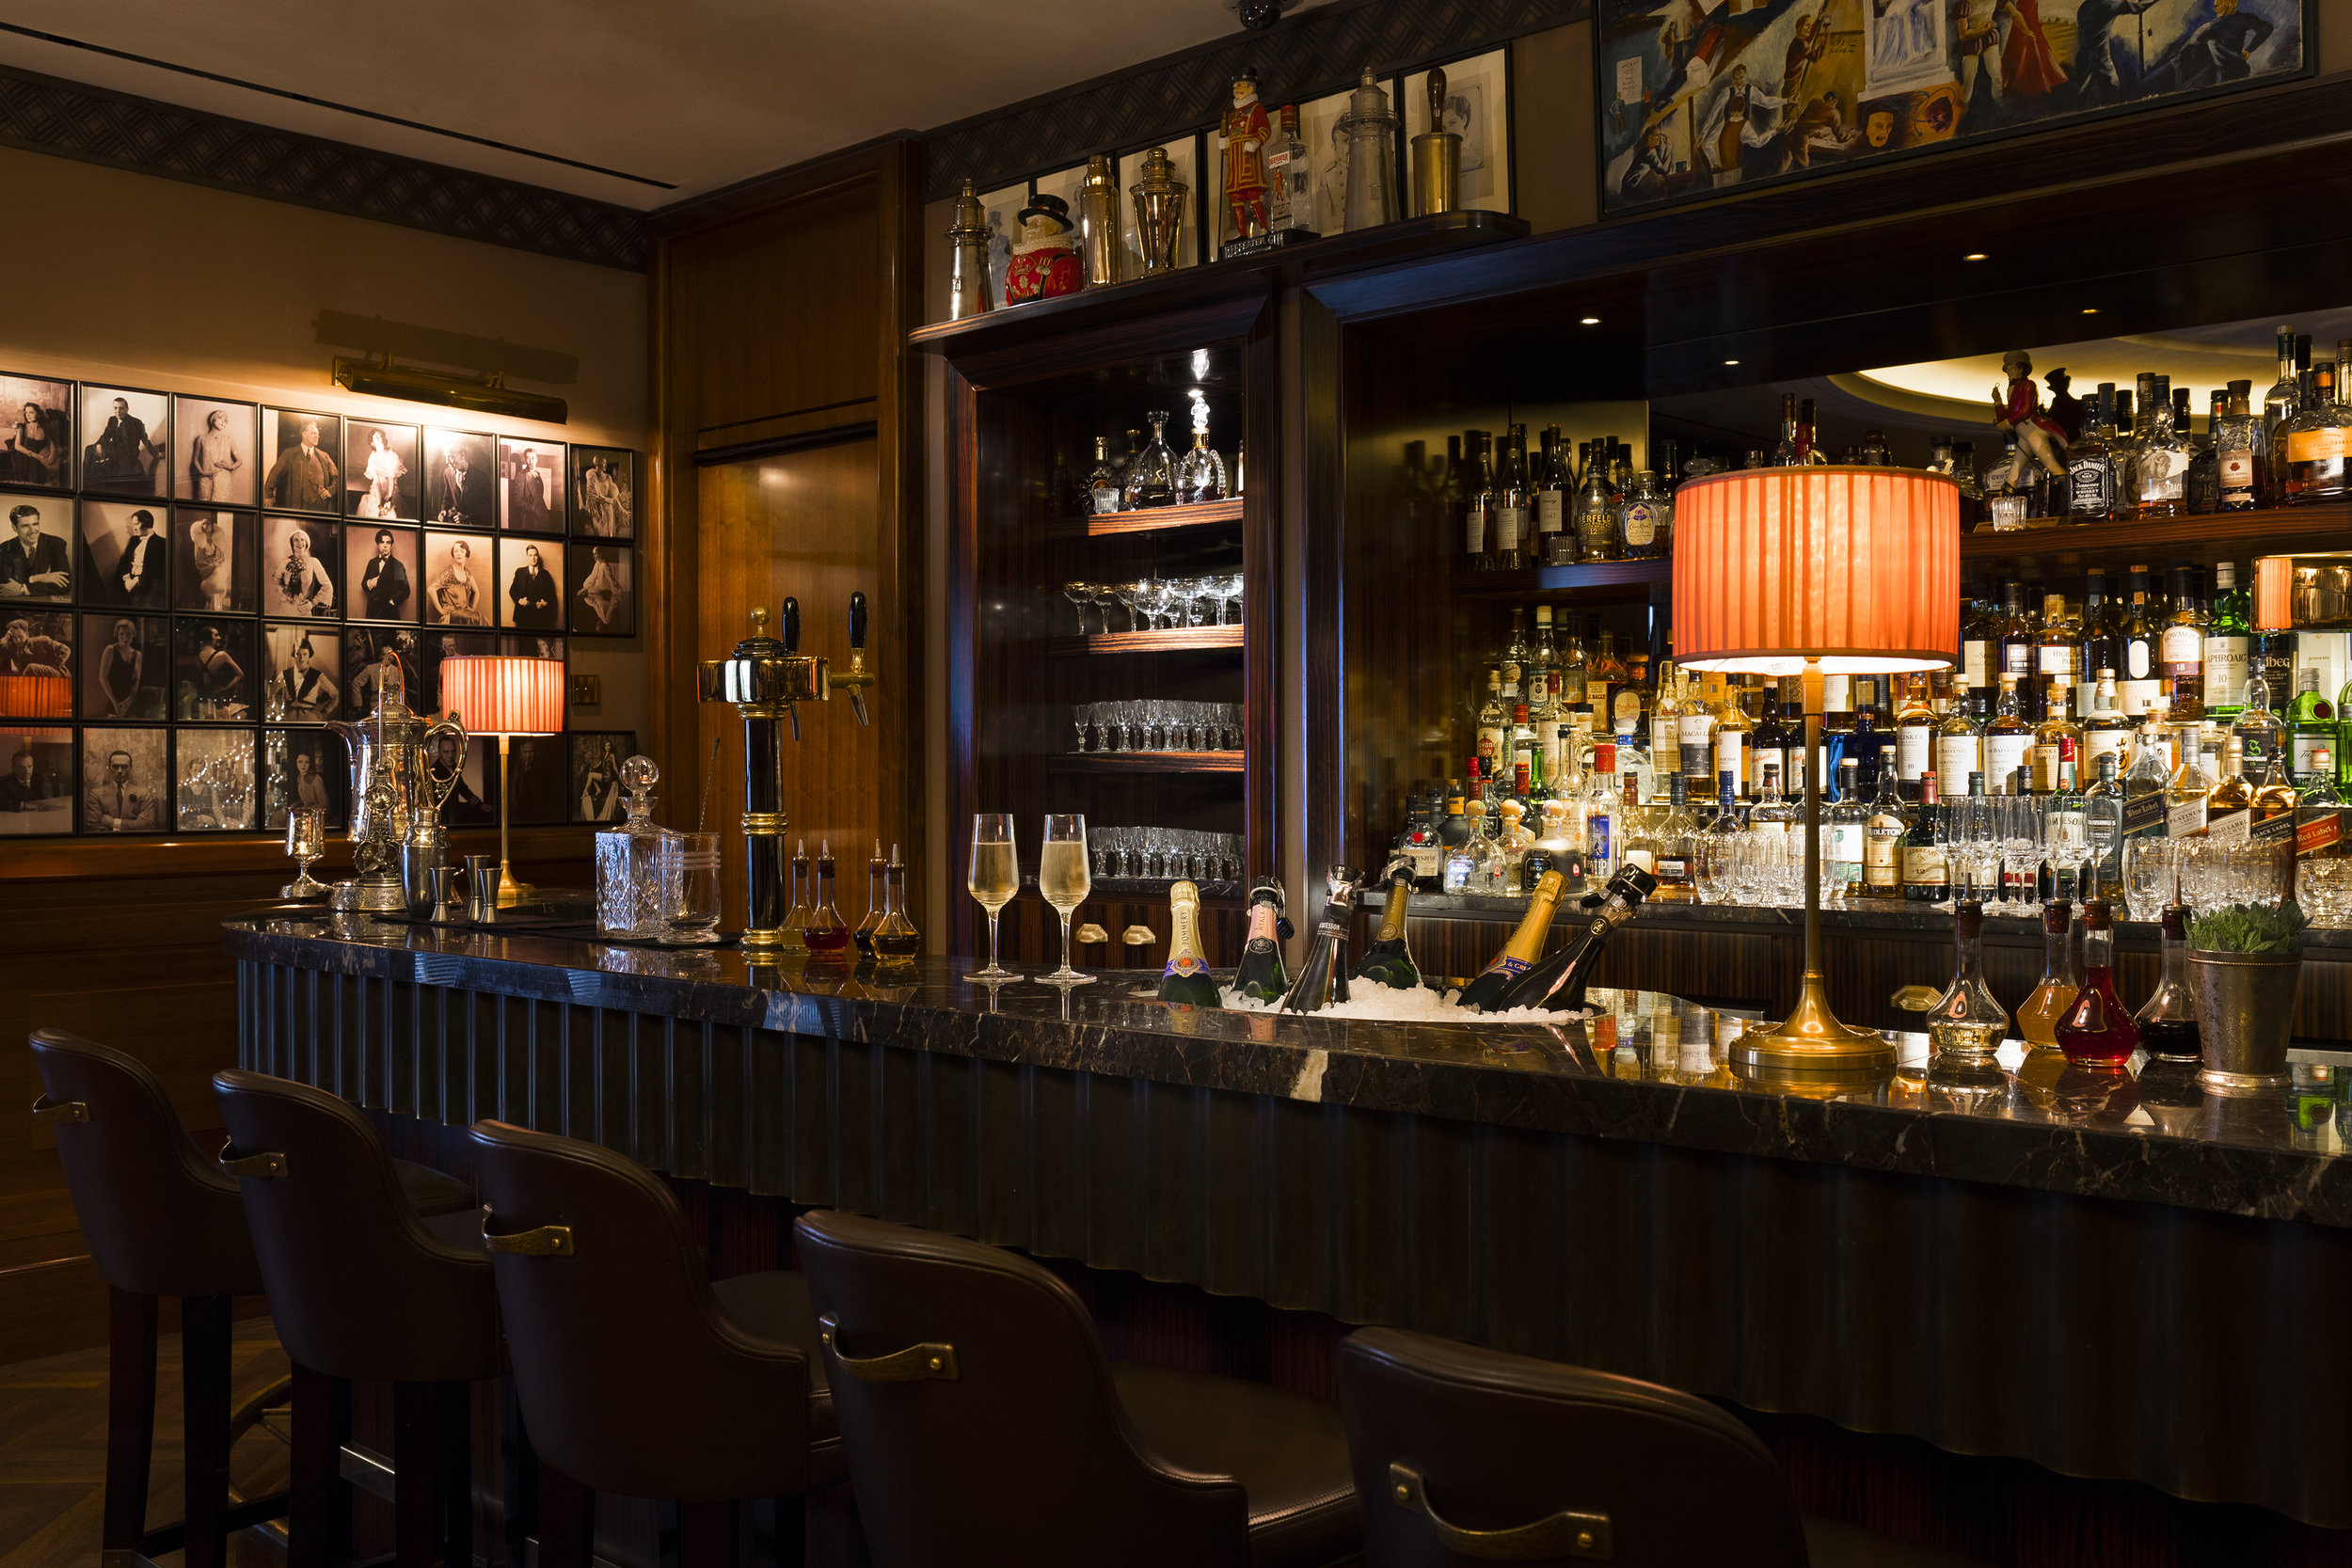 The American Bar at The Beaumont Hotel